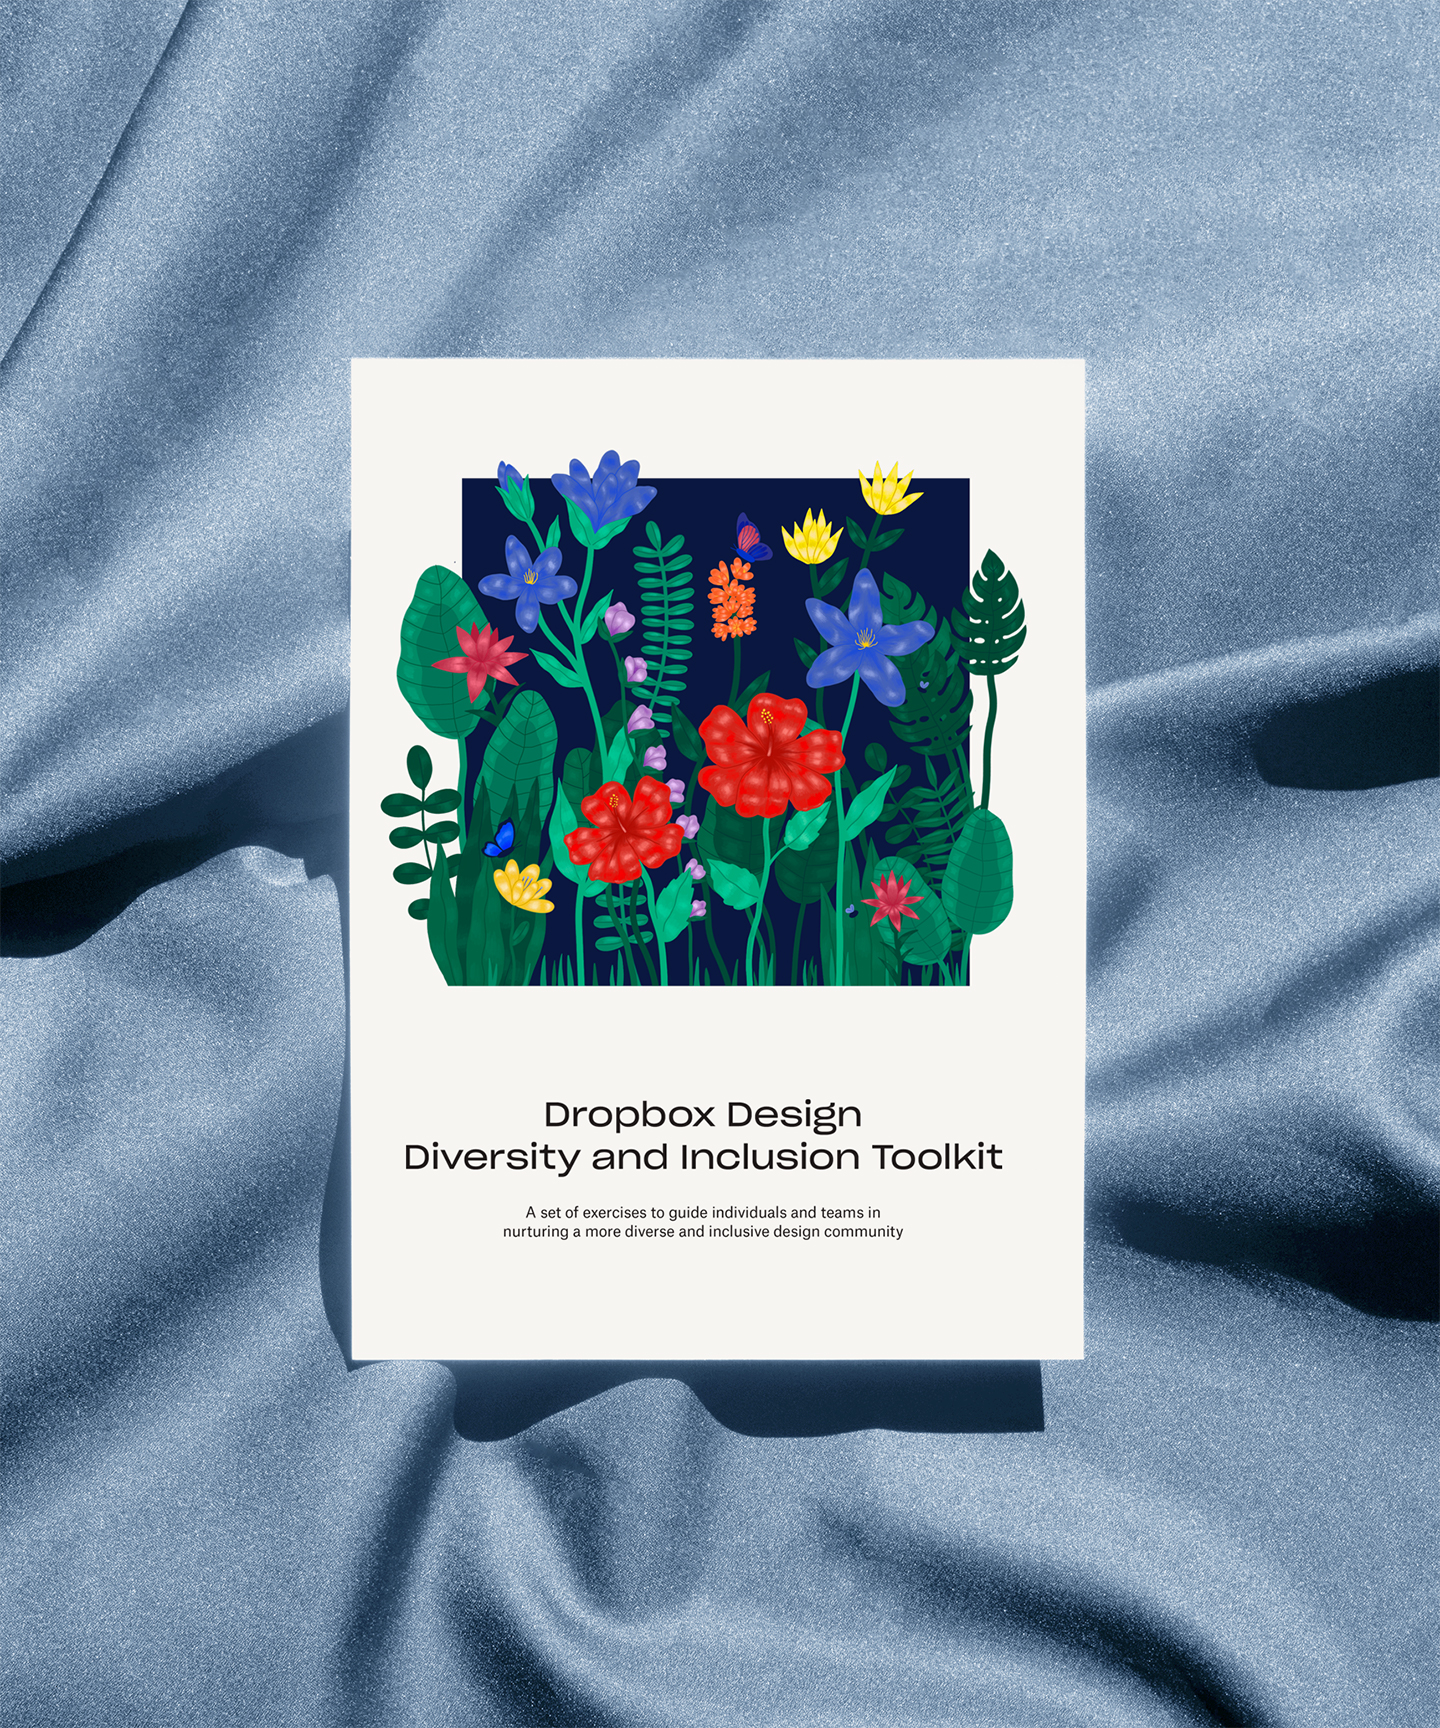 Dropbox Design Diversity & Inclusion Toolkit